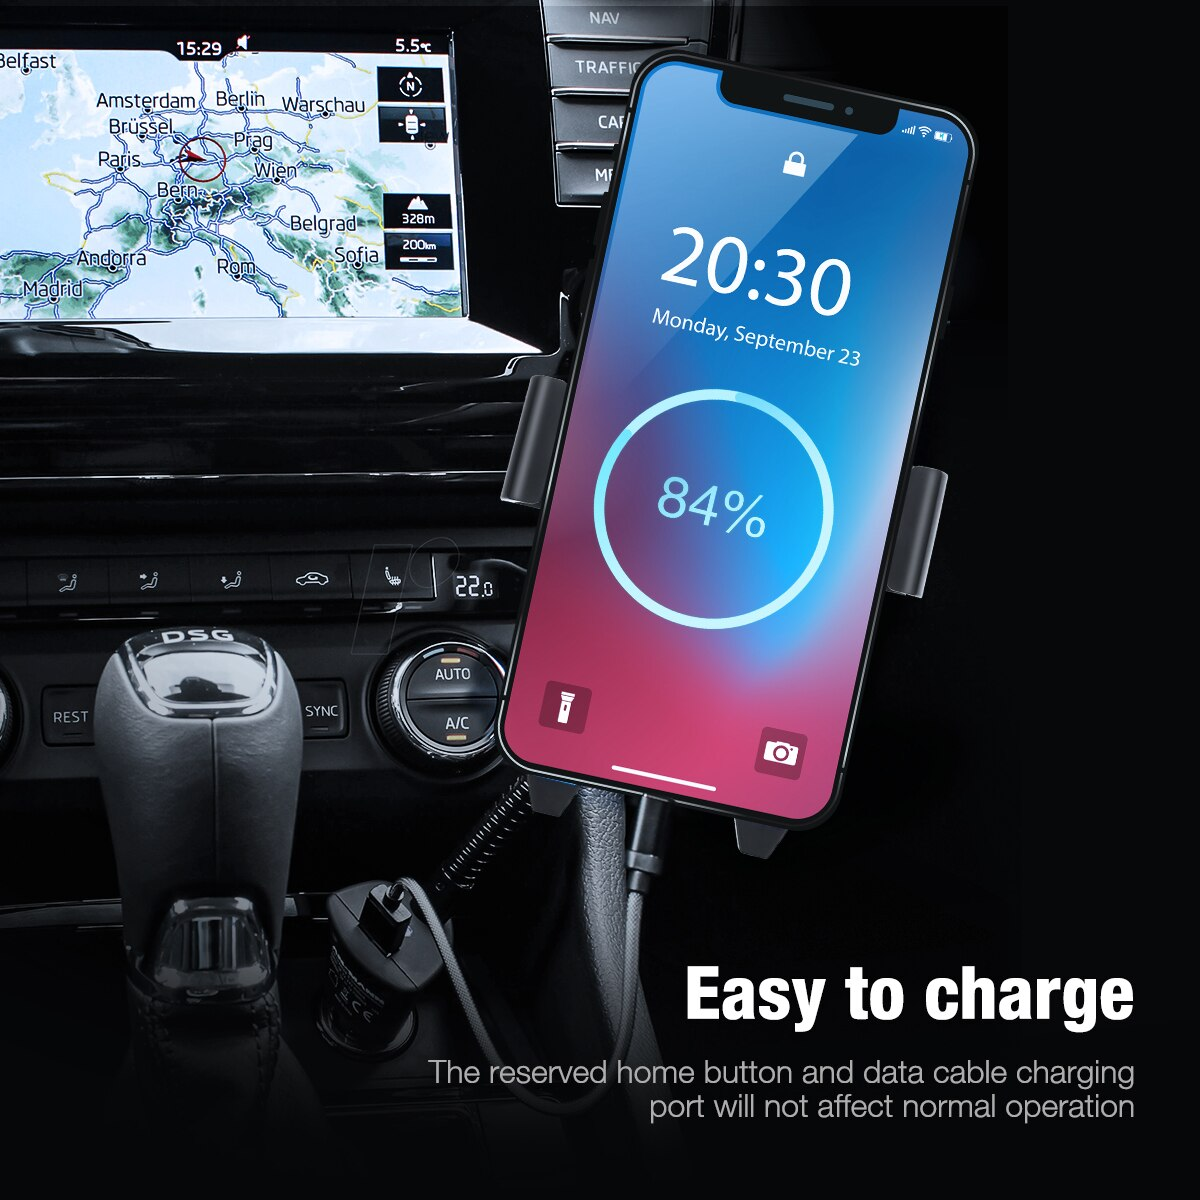 Hc2756c1065d84c13adfcb3ef026c21050 - 360 Degree Rotatable Car Phone Holder For 2.4 to 3.4inch Phone Mount Stand in Car Bracket For Poco x3 pro iPhone Xiaomi Samsung